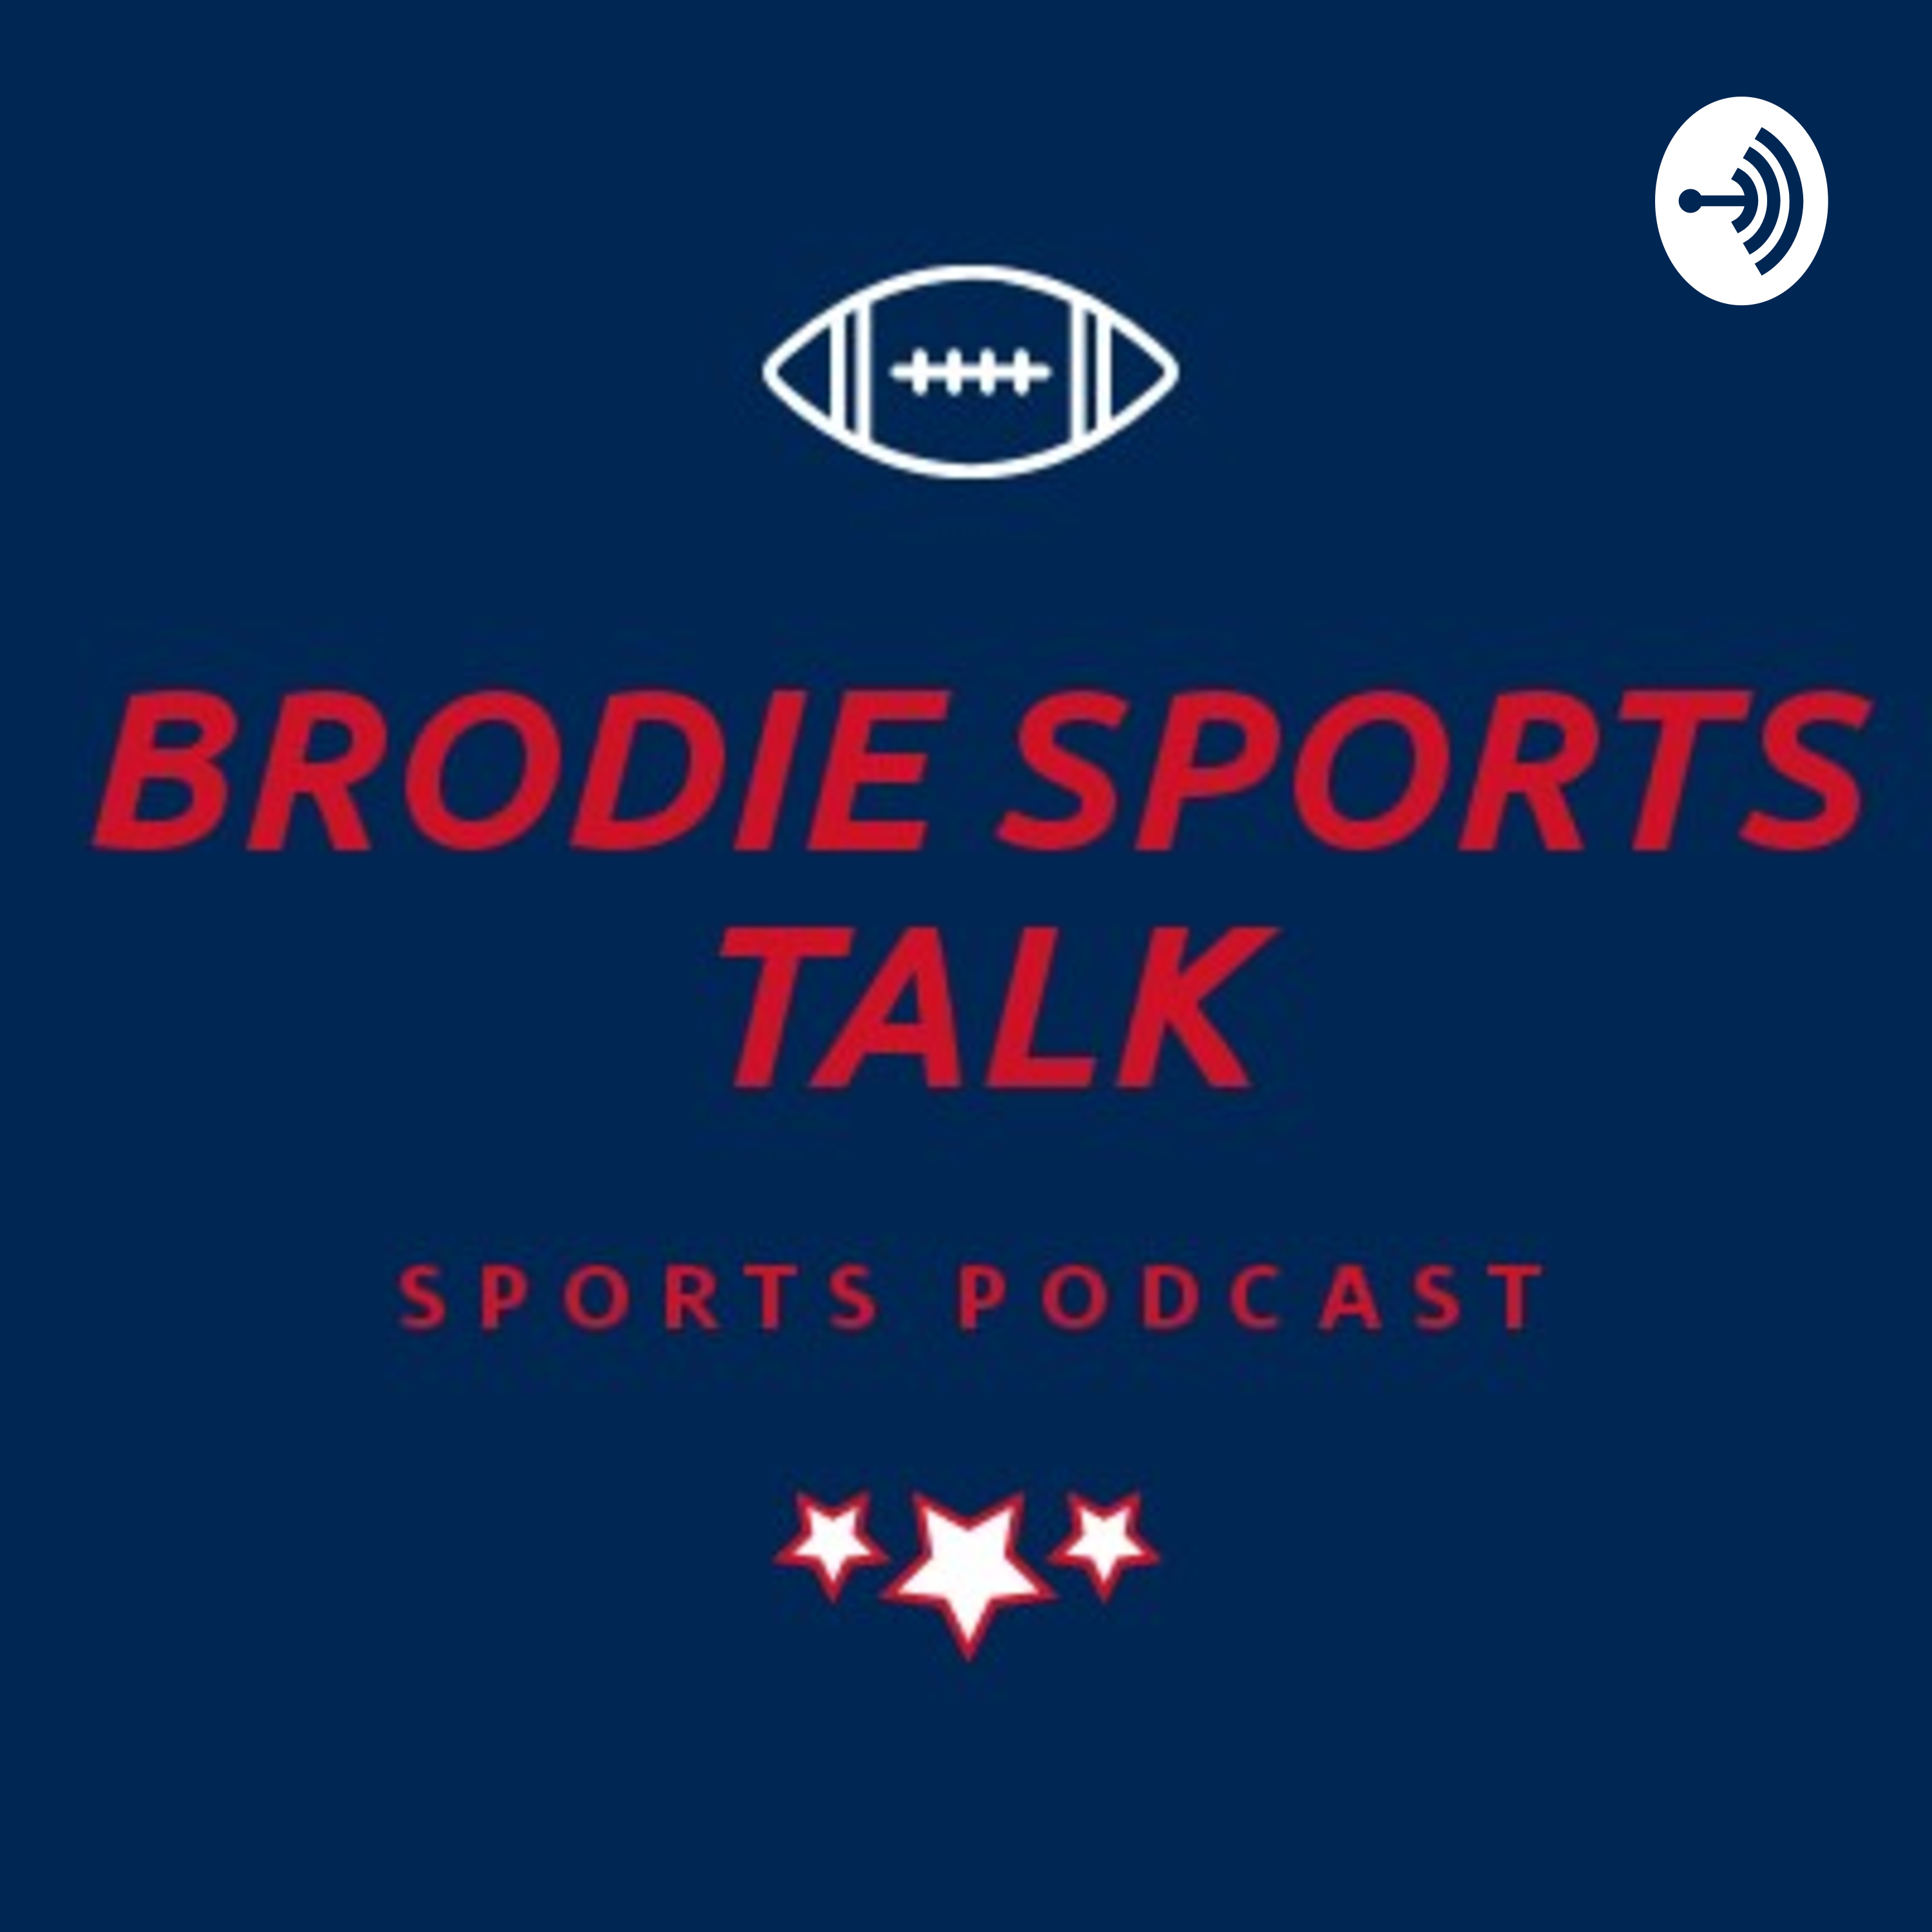 Episode 50: Brodie Sports Talk History, and a Too Early 2021 NFL Mock Draft